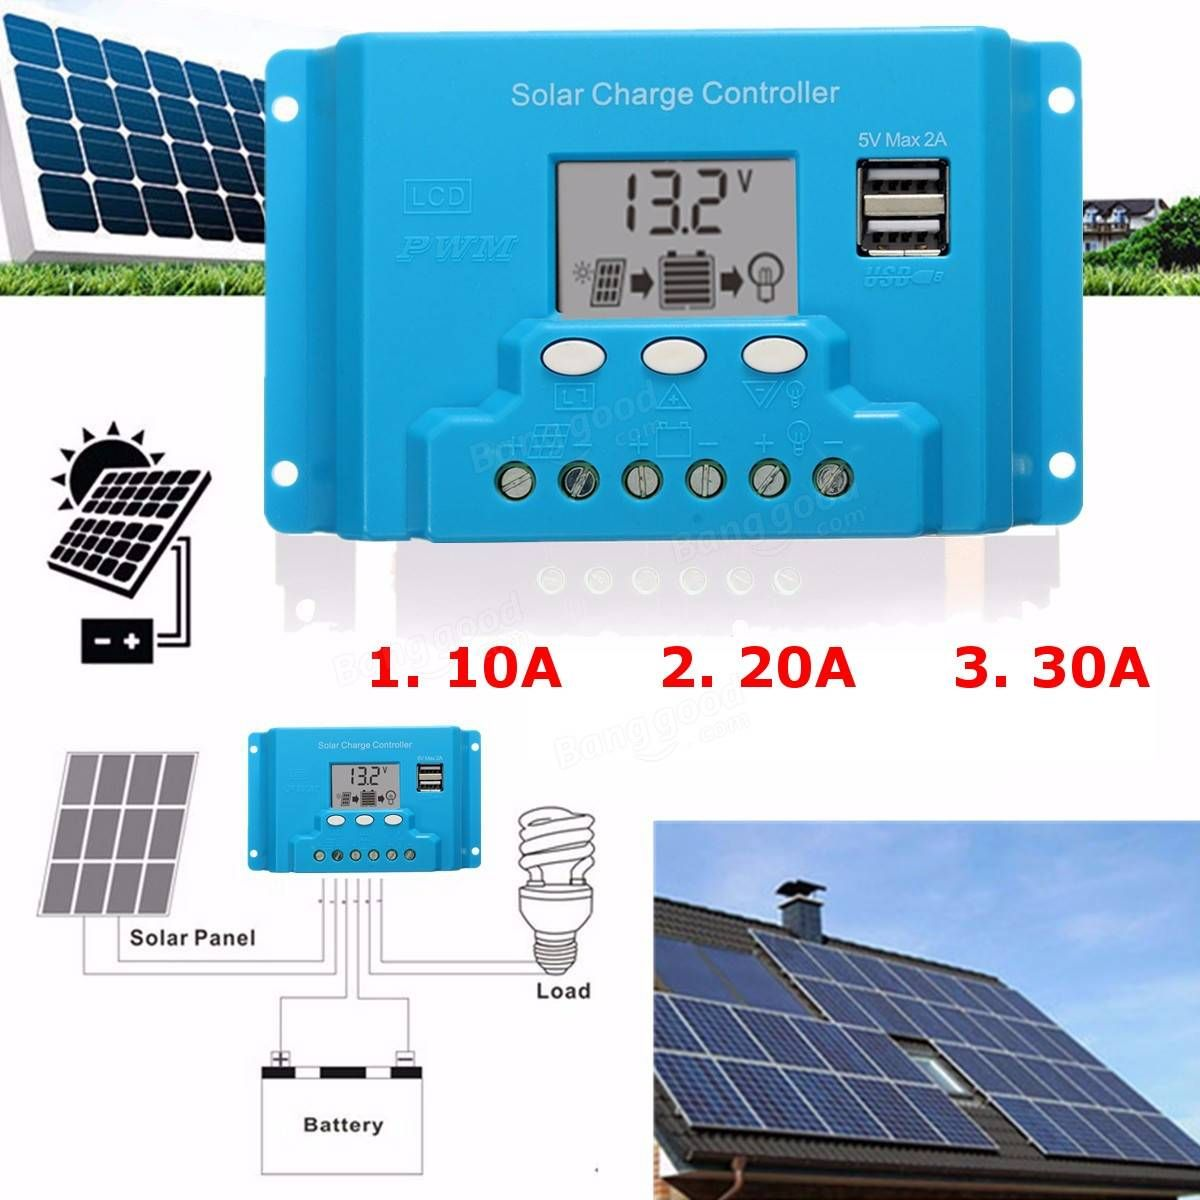 Solar Charge Controllers The Heart Of Any System They Are An Scc3 12 Volt 20 Amp Controller 10a 20a 30a Lcd Pwm Panel Battery Regulator 12v 24v With Dual